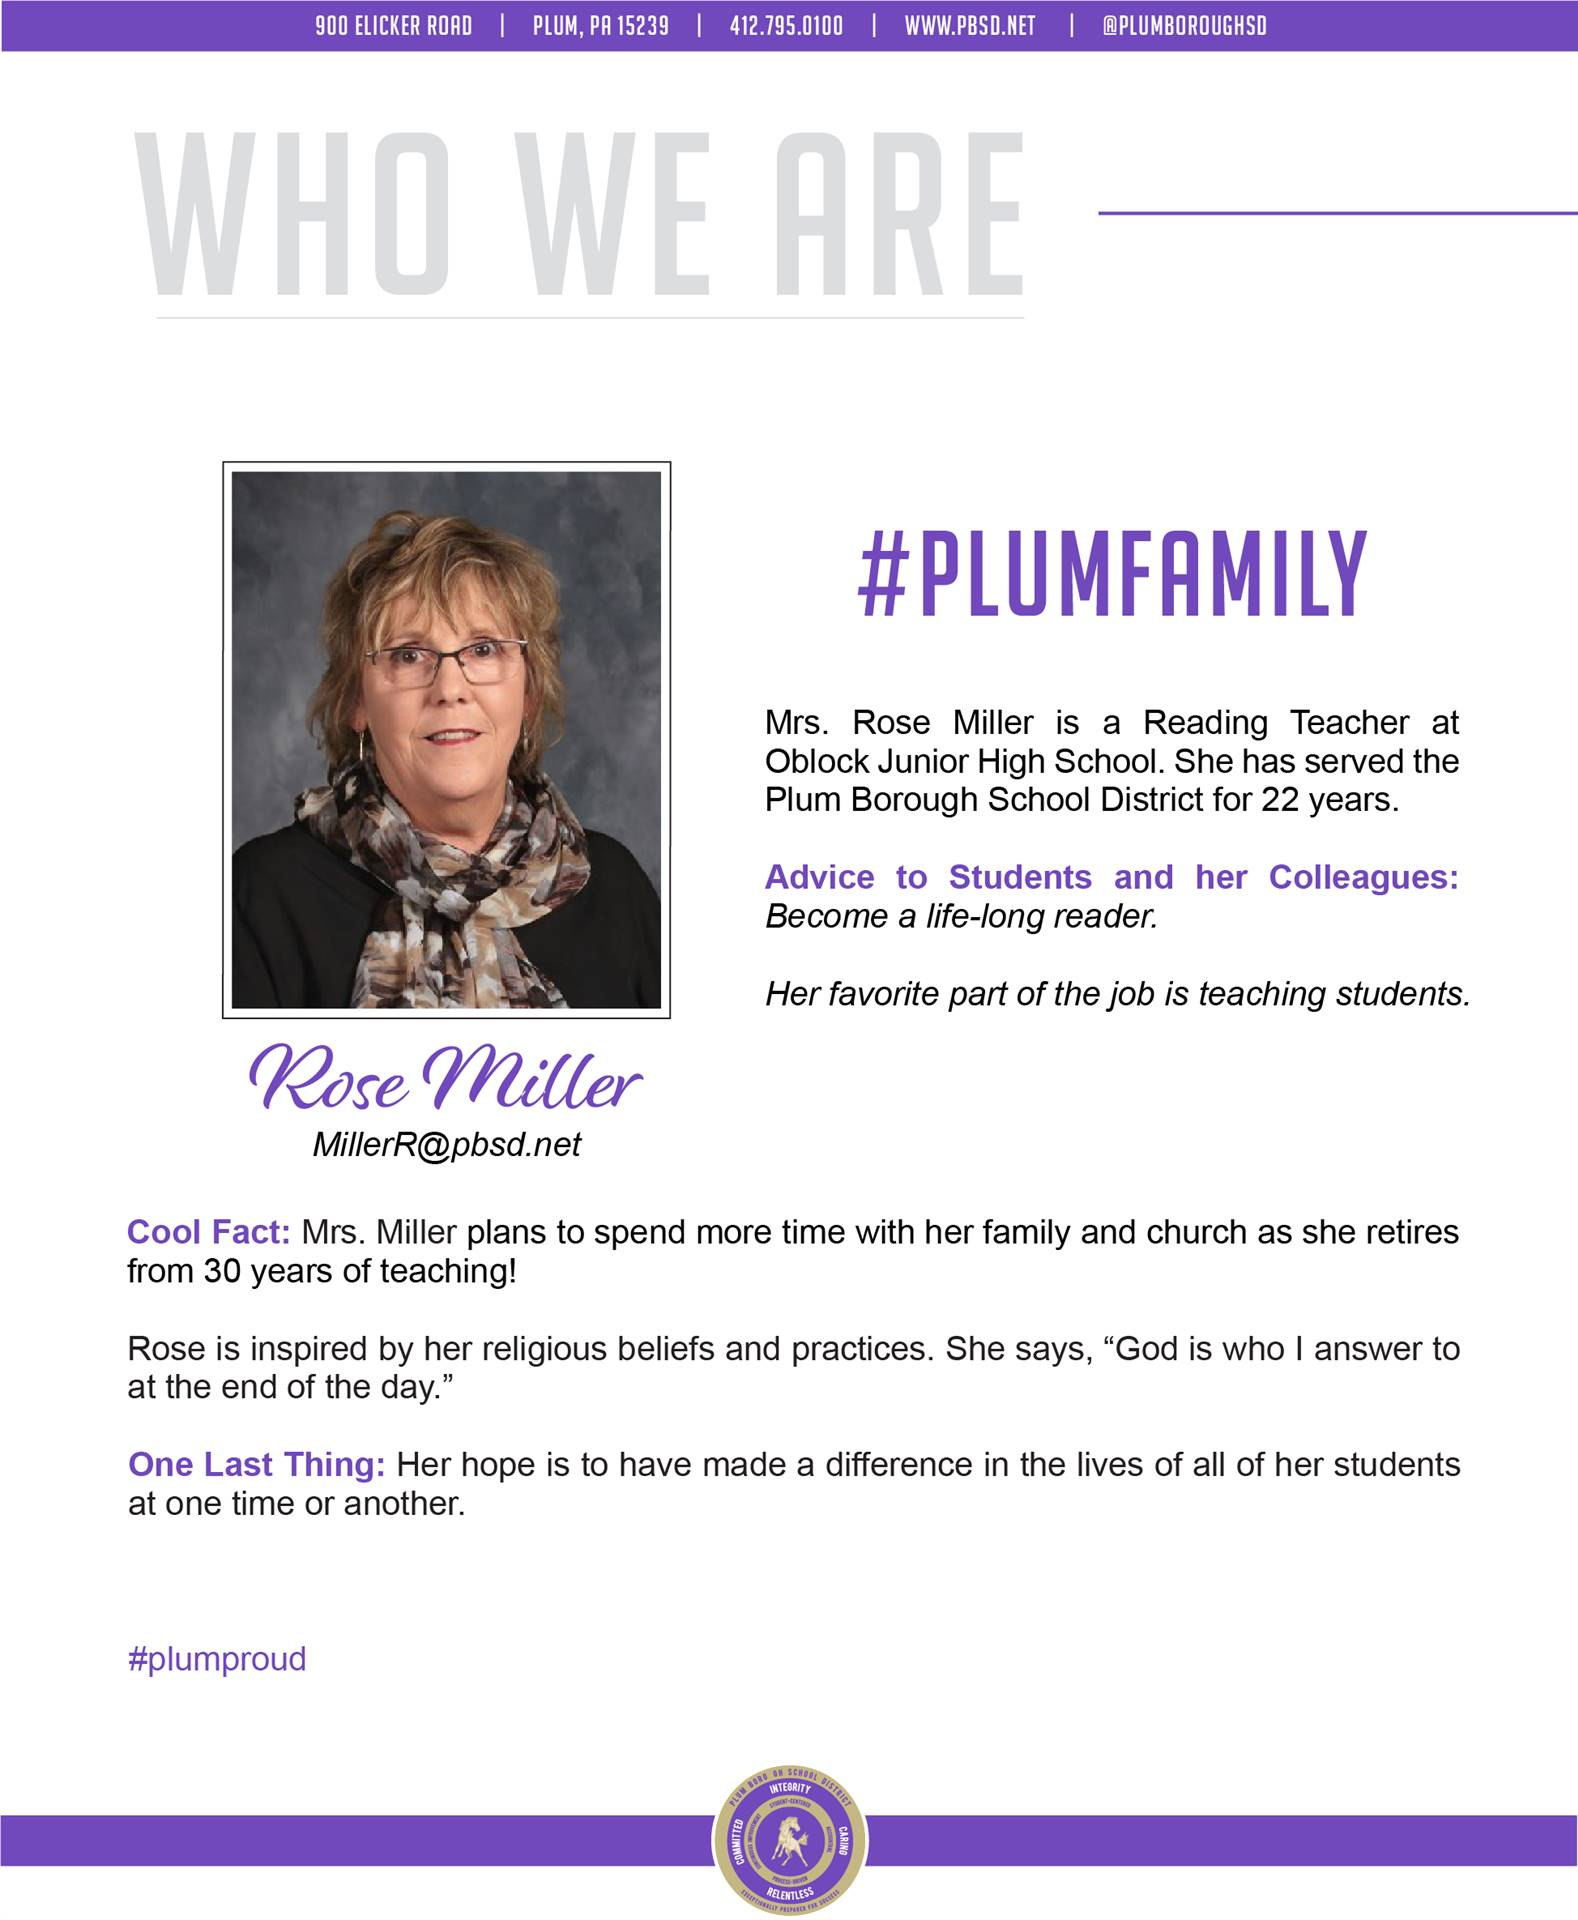 Who We Are Wednesday features Rose Miller.